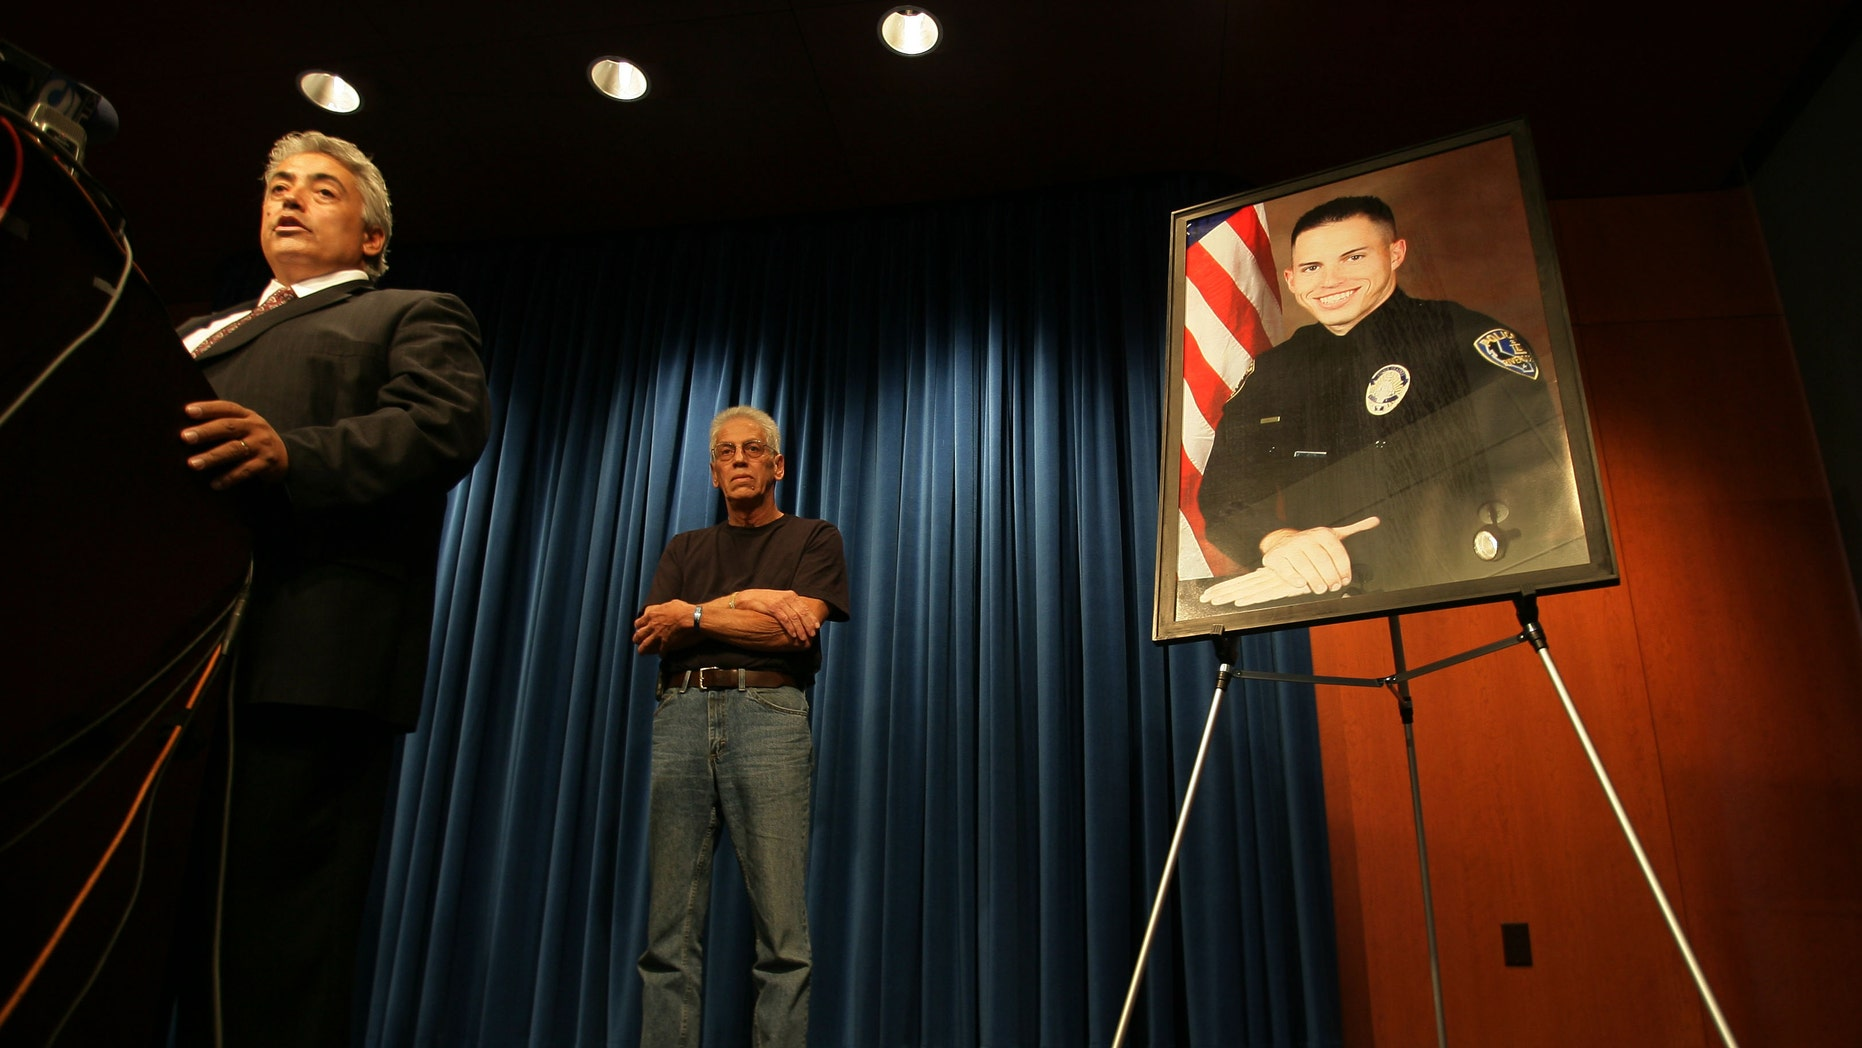 Nov. 15: Riverside County District Attorney Rod Pacheco, announces charges filed against Earl Ellis Green for the murder of Riverside Police Officer Ryan Bonaminio, pictured at right, during a news conference Riverside, Calif.